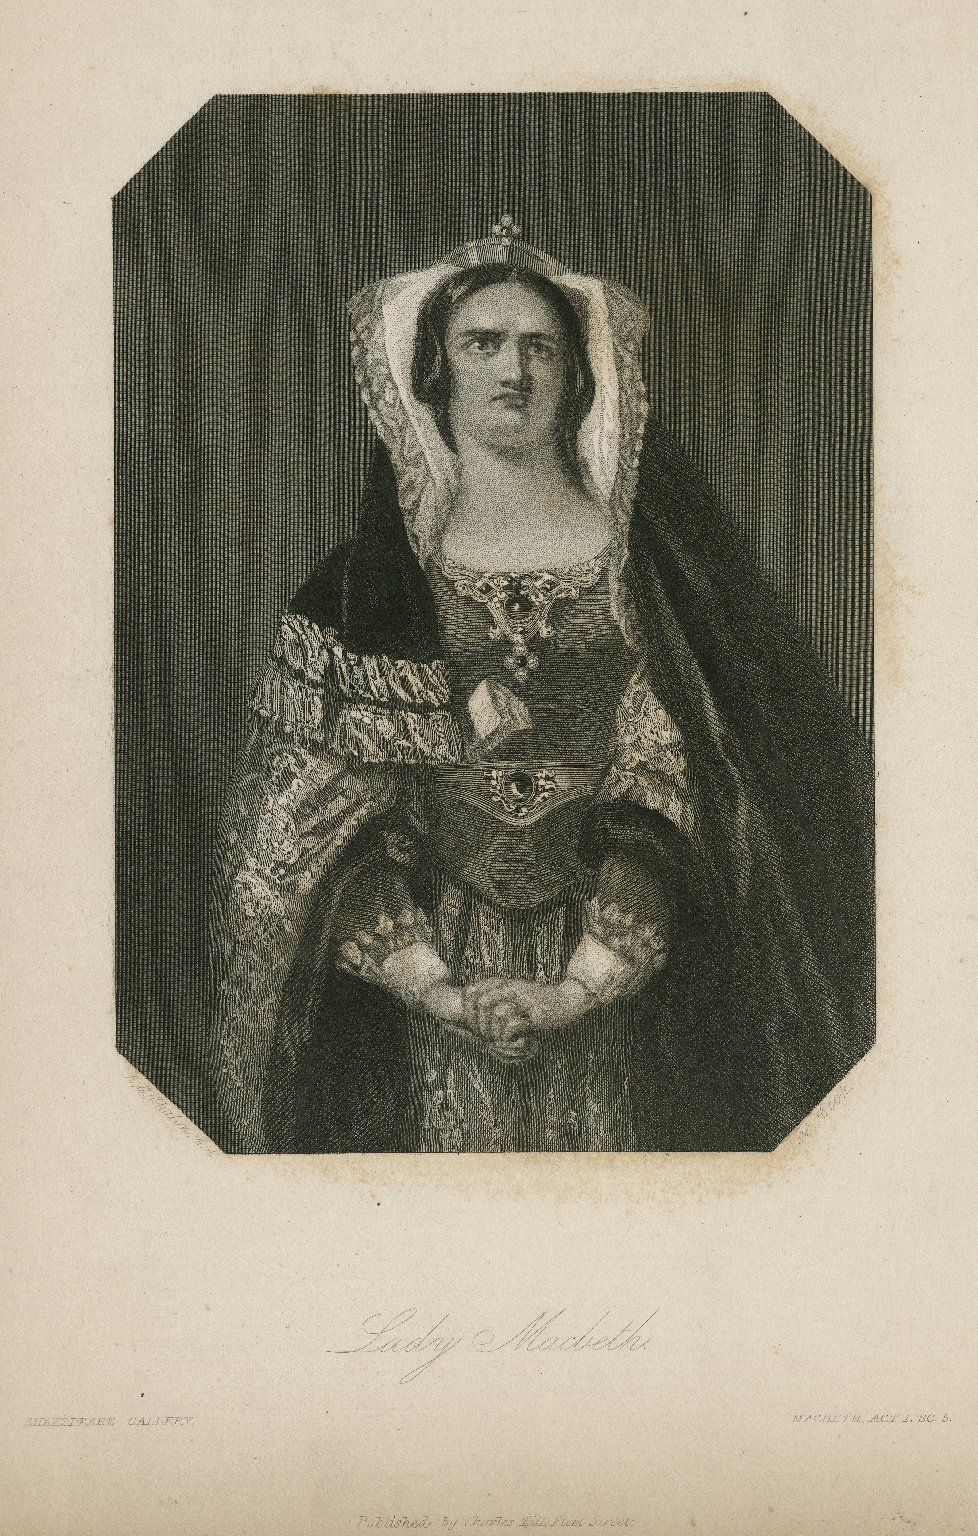 Lady Macbeth [character in Shakespeare's] Macbeth ... [graphic] / A.E. Chalon R.A. pinx ; engraved by H. Cook.